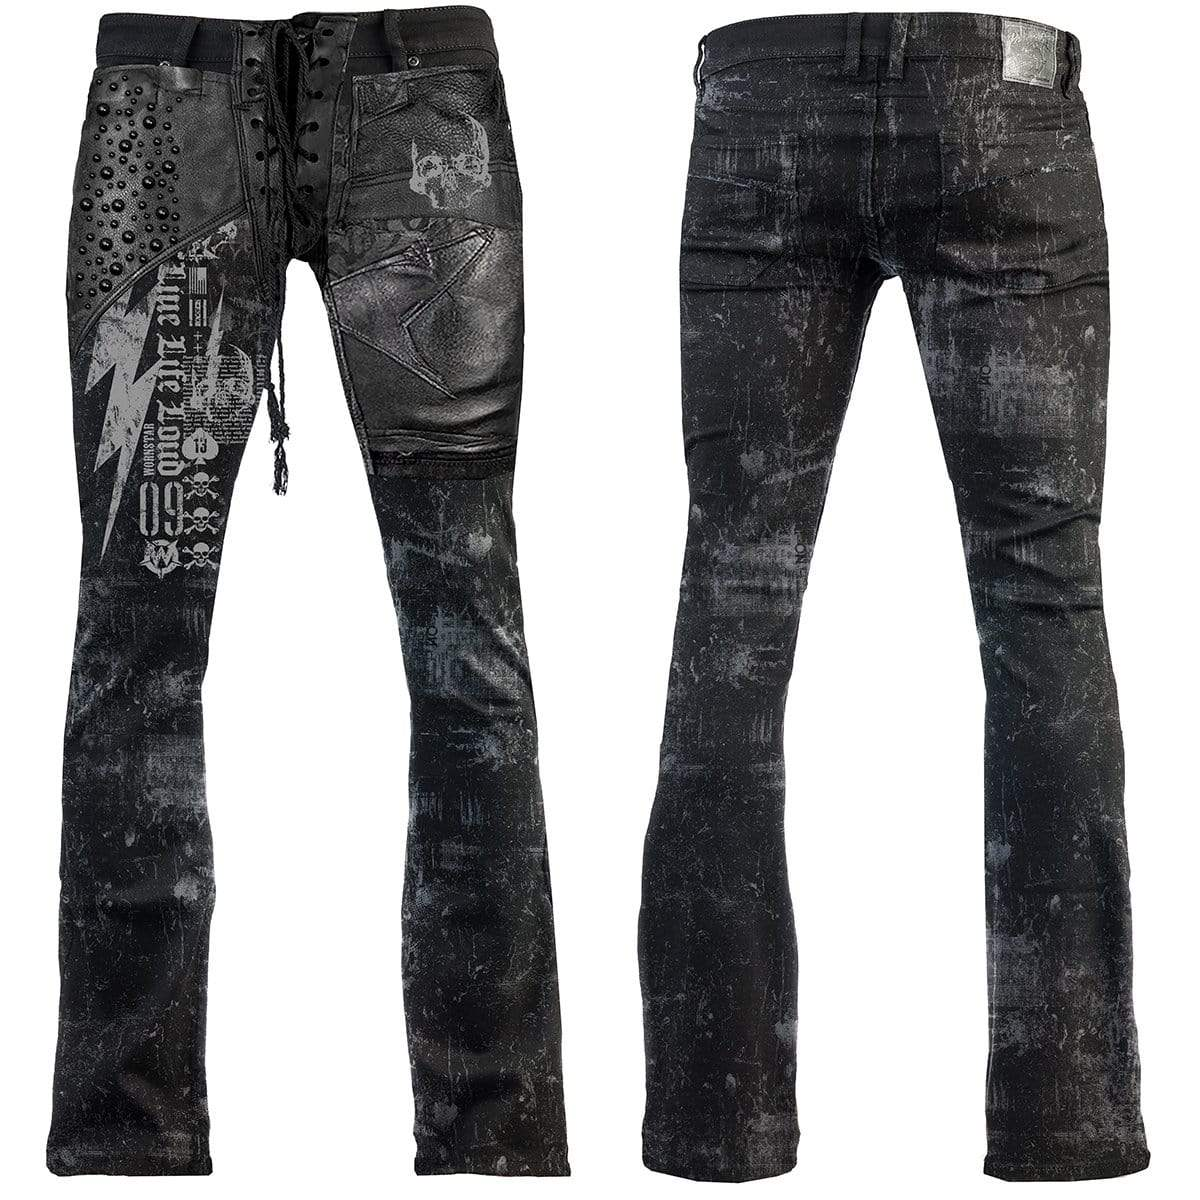 Charger Black Custom Pants